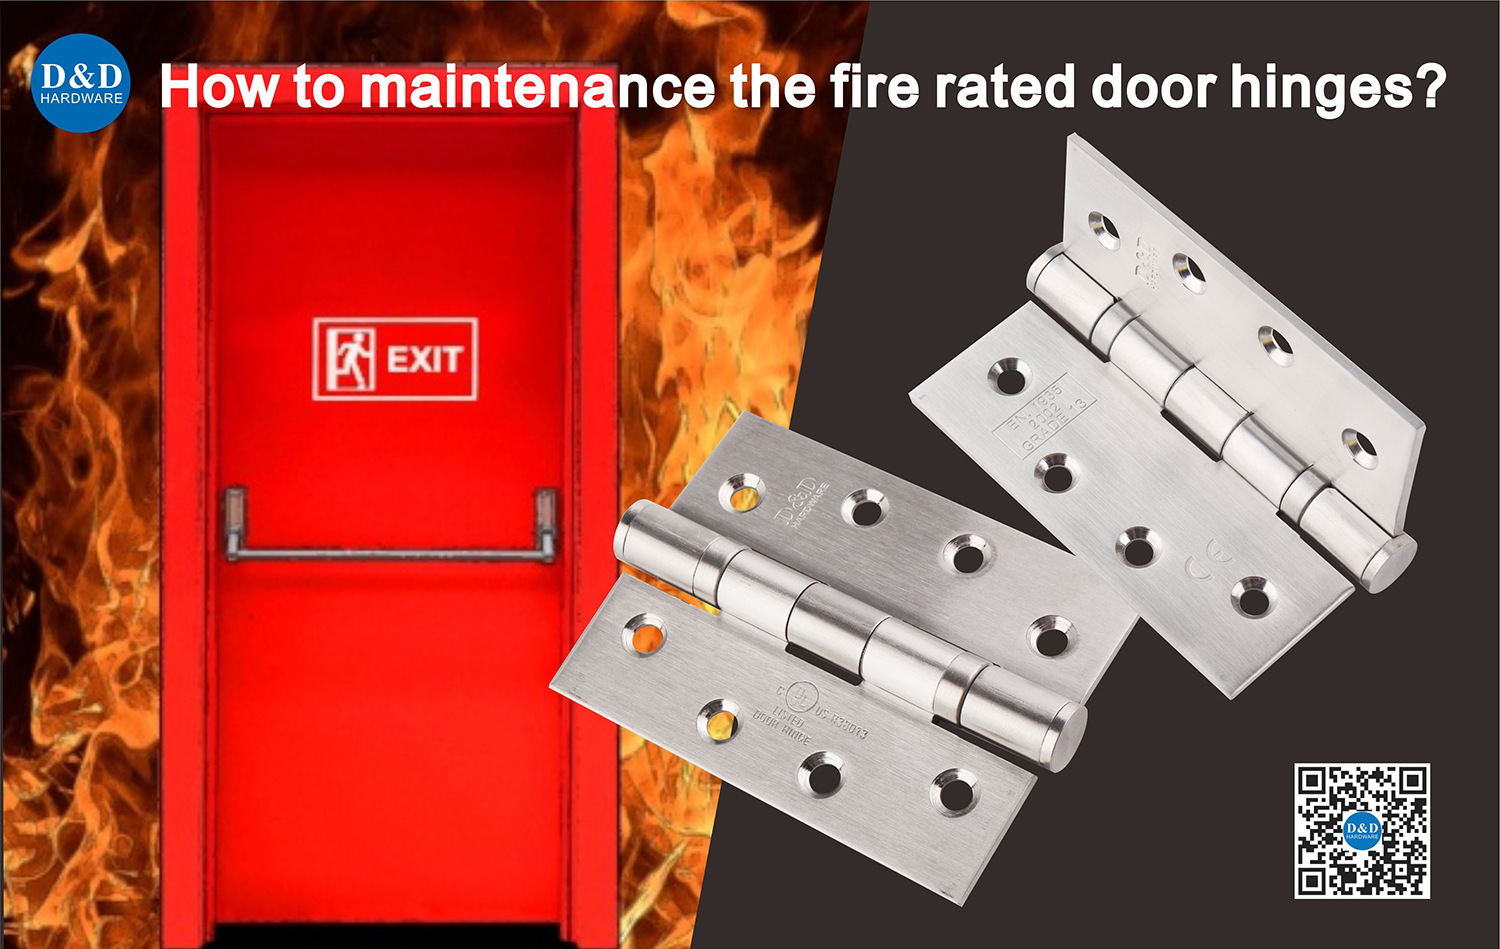 How to maintenance the fire rated door hinges?